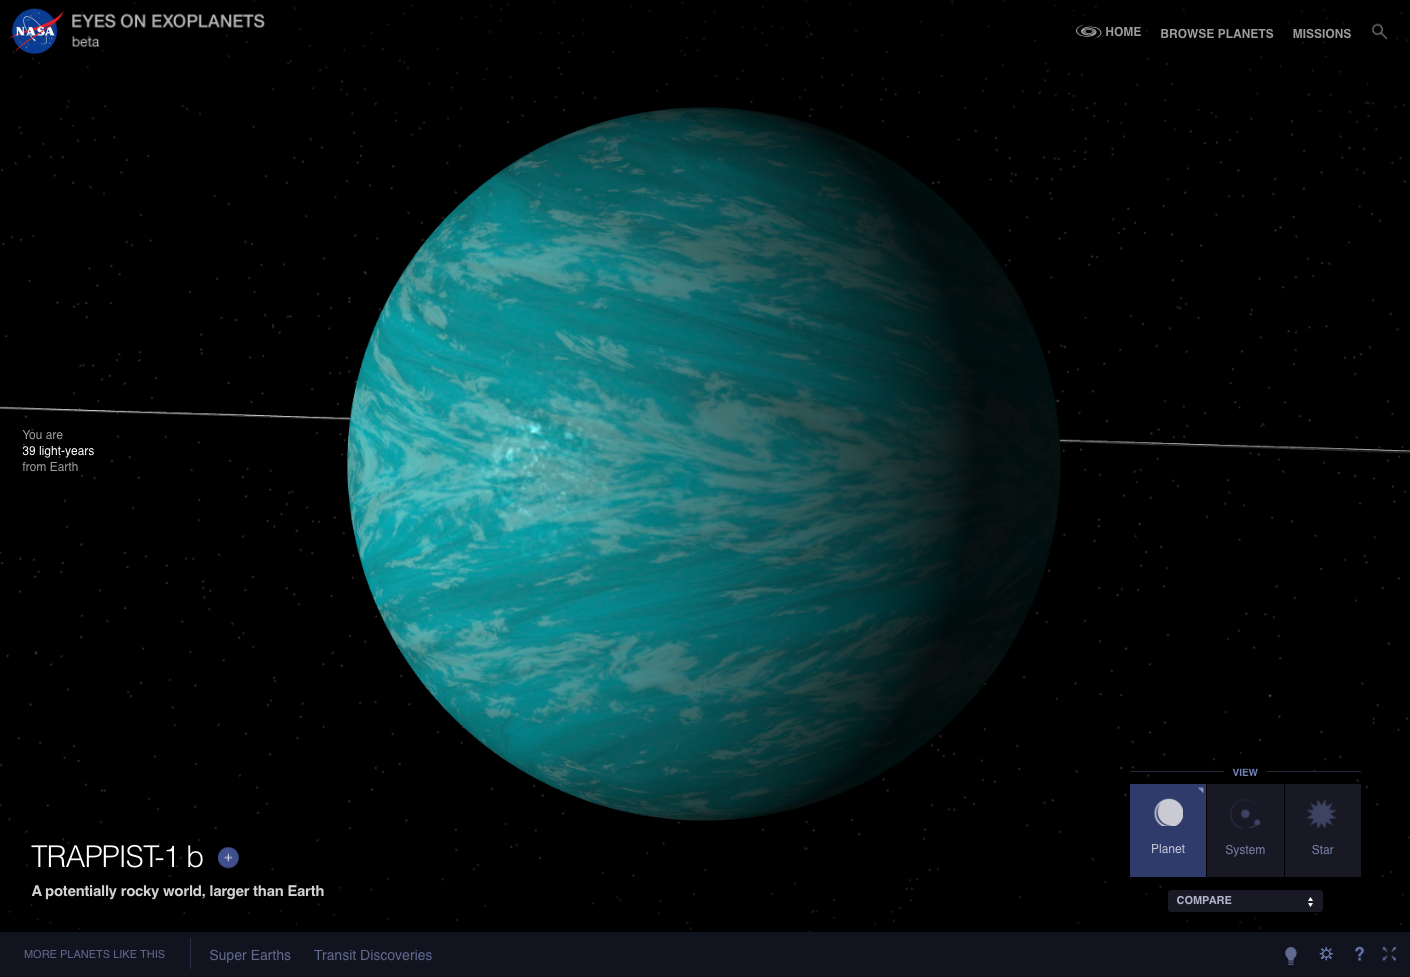 The exoplanet TRAPPIST-1 b is shown as blue in an artist's visualization.